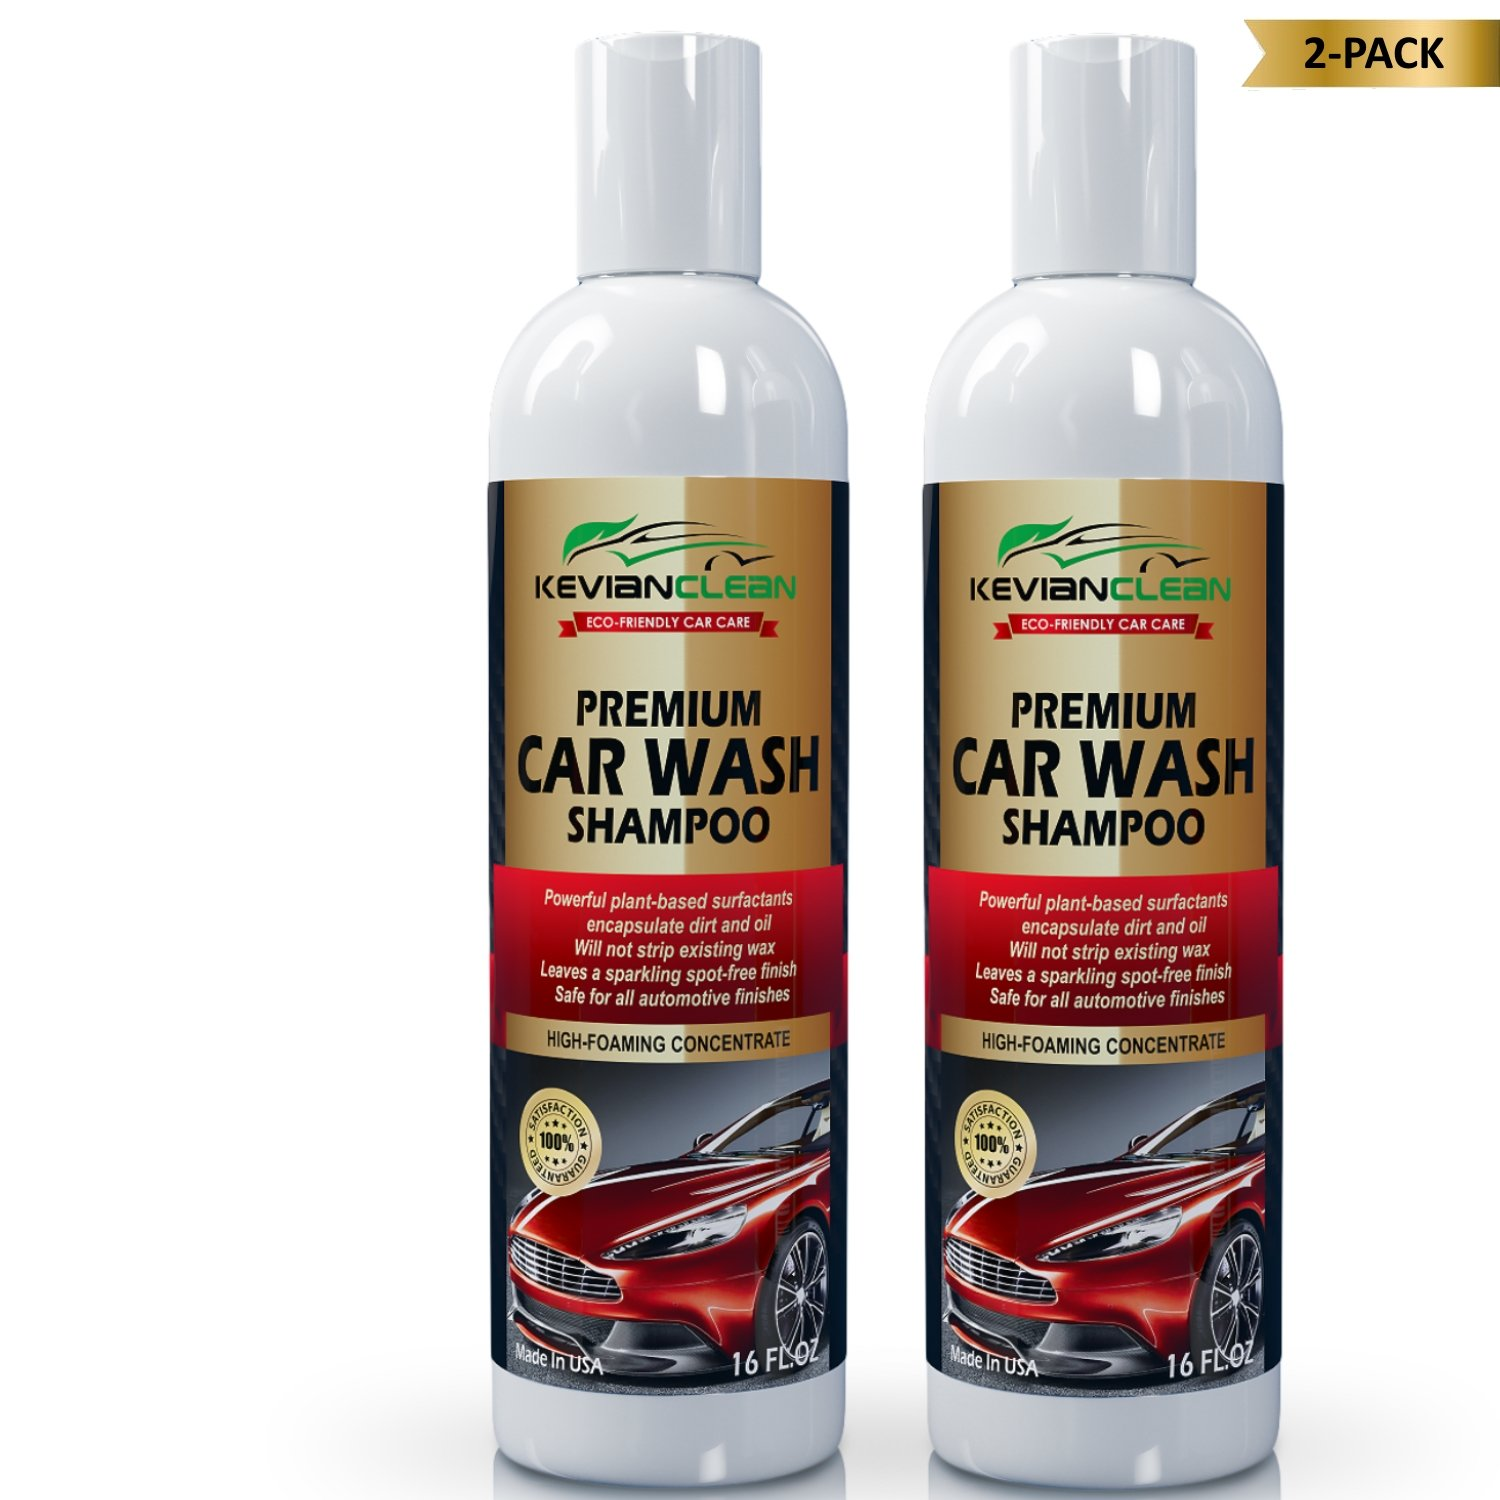 KevianClean Car Wash Shampoo Concentrate - Cleans Tough Dirt and Grime for an Ultimate Deep Reflective Shine & Spot Free Finish, Best Auto Detailing Soap for All Automotive Finishes - 16 oz. (2)